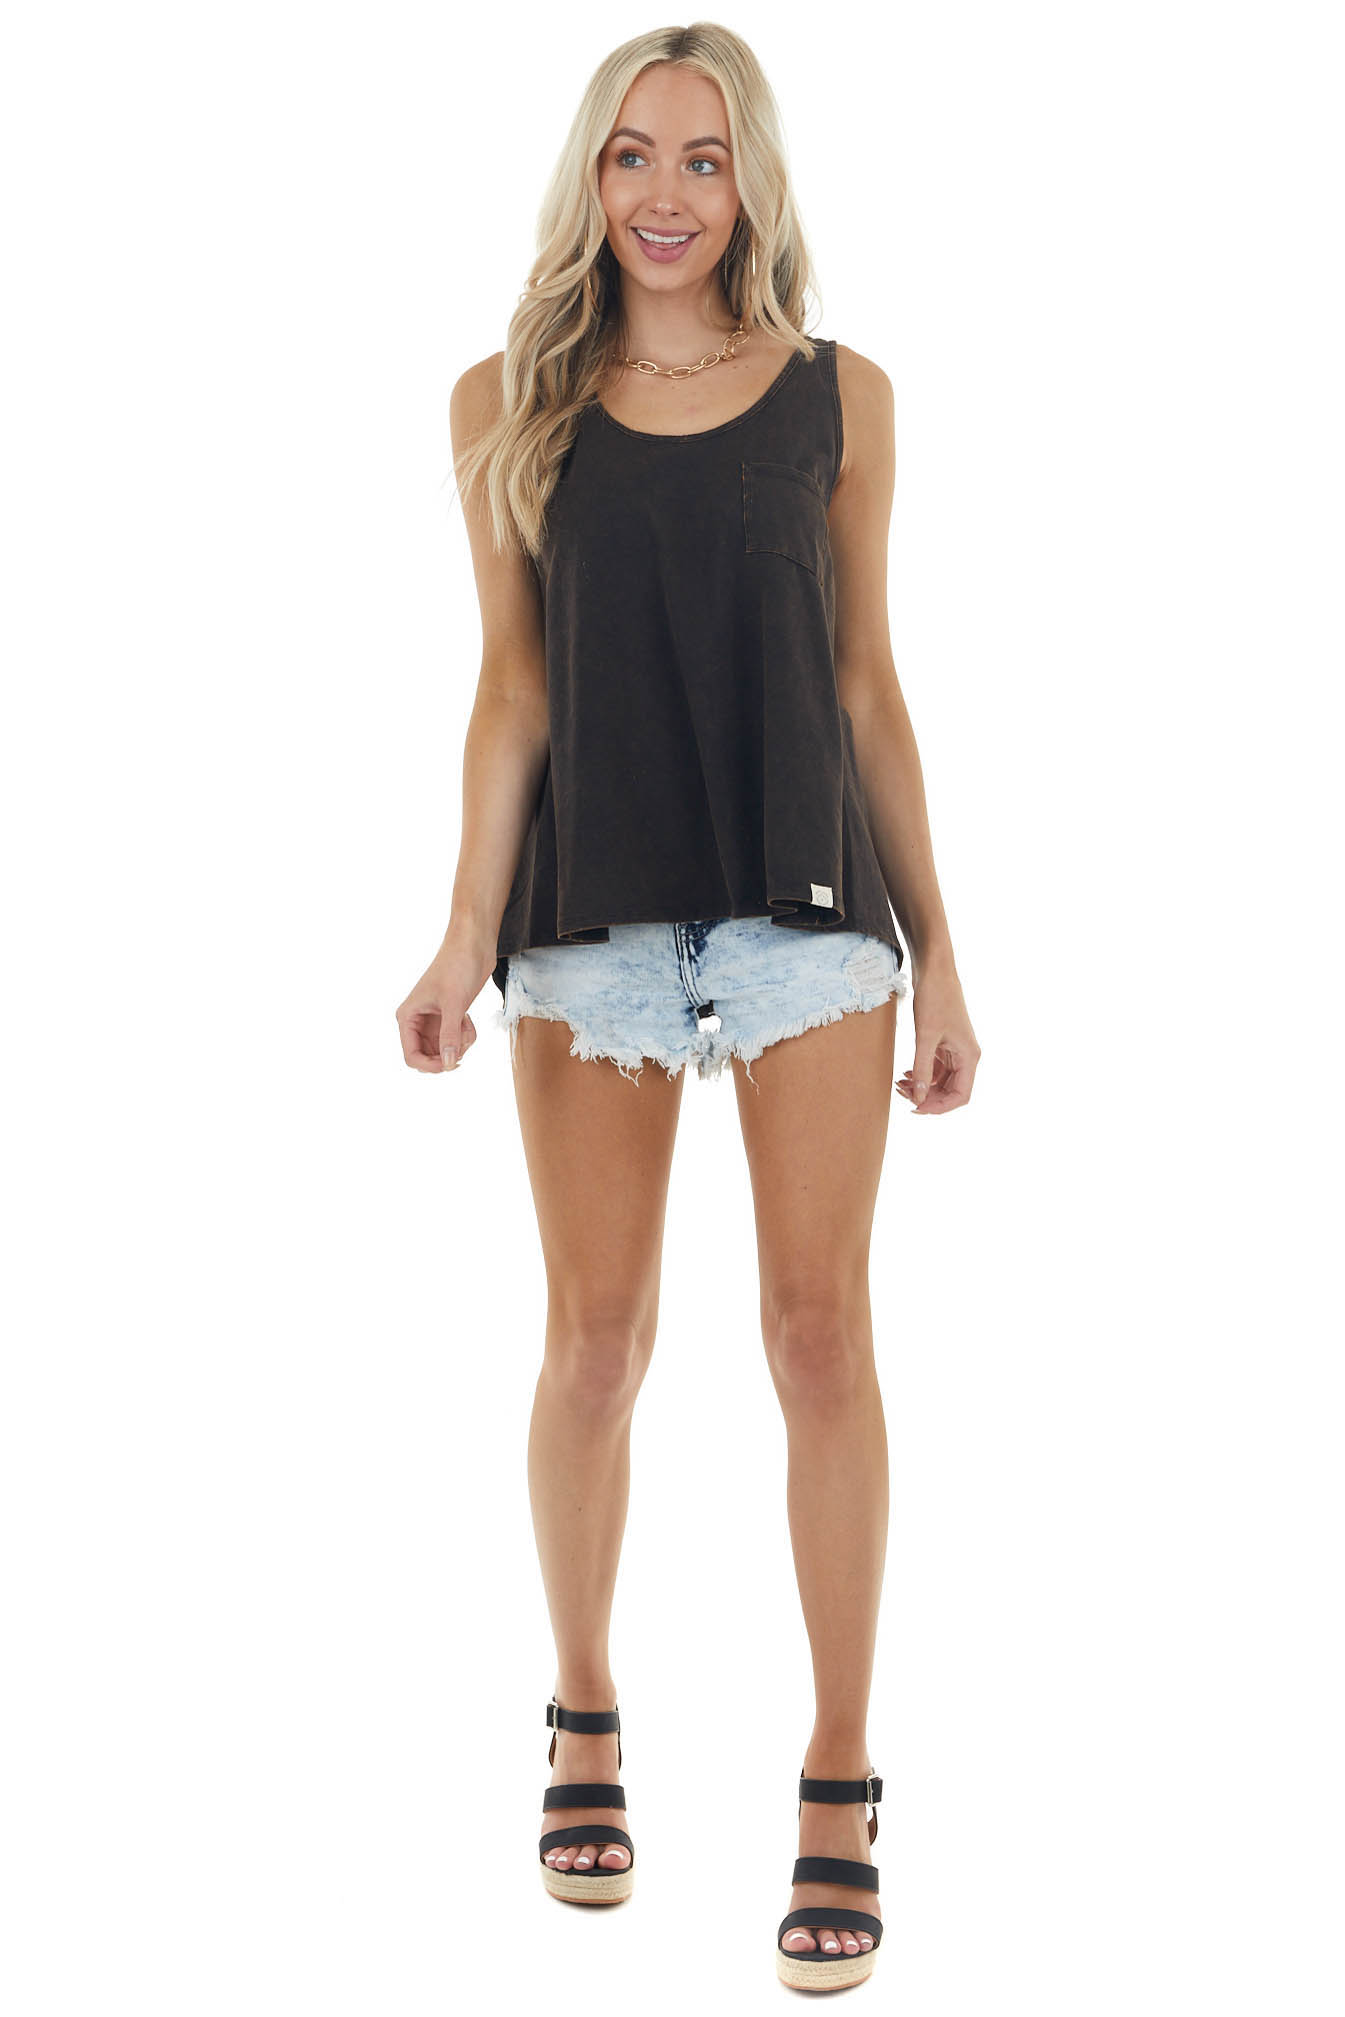 Black Mineral Wash Knit Tank Top with Front Pocket